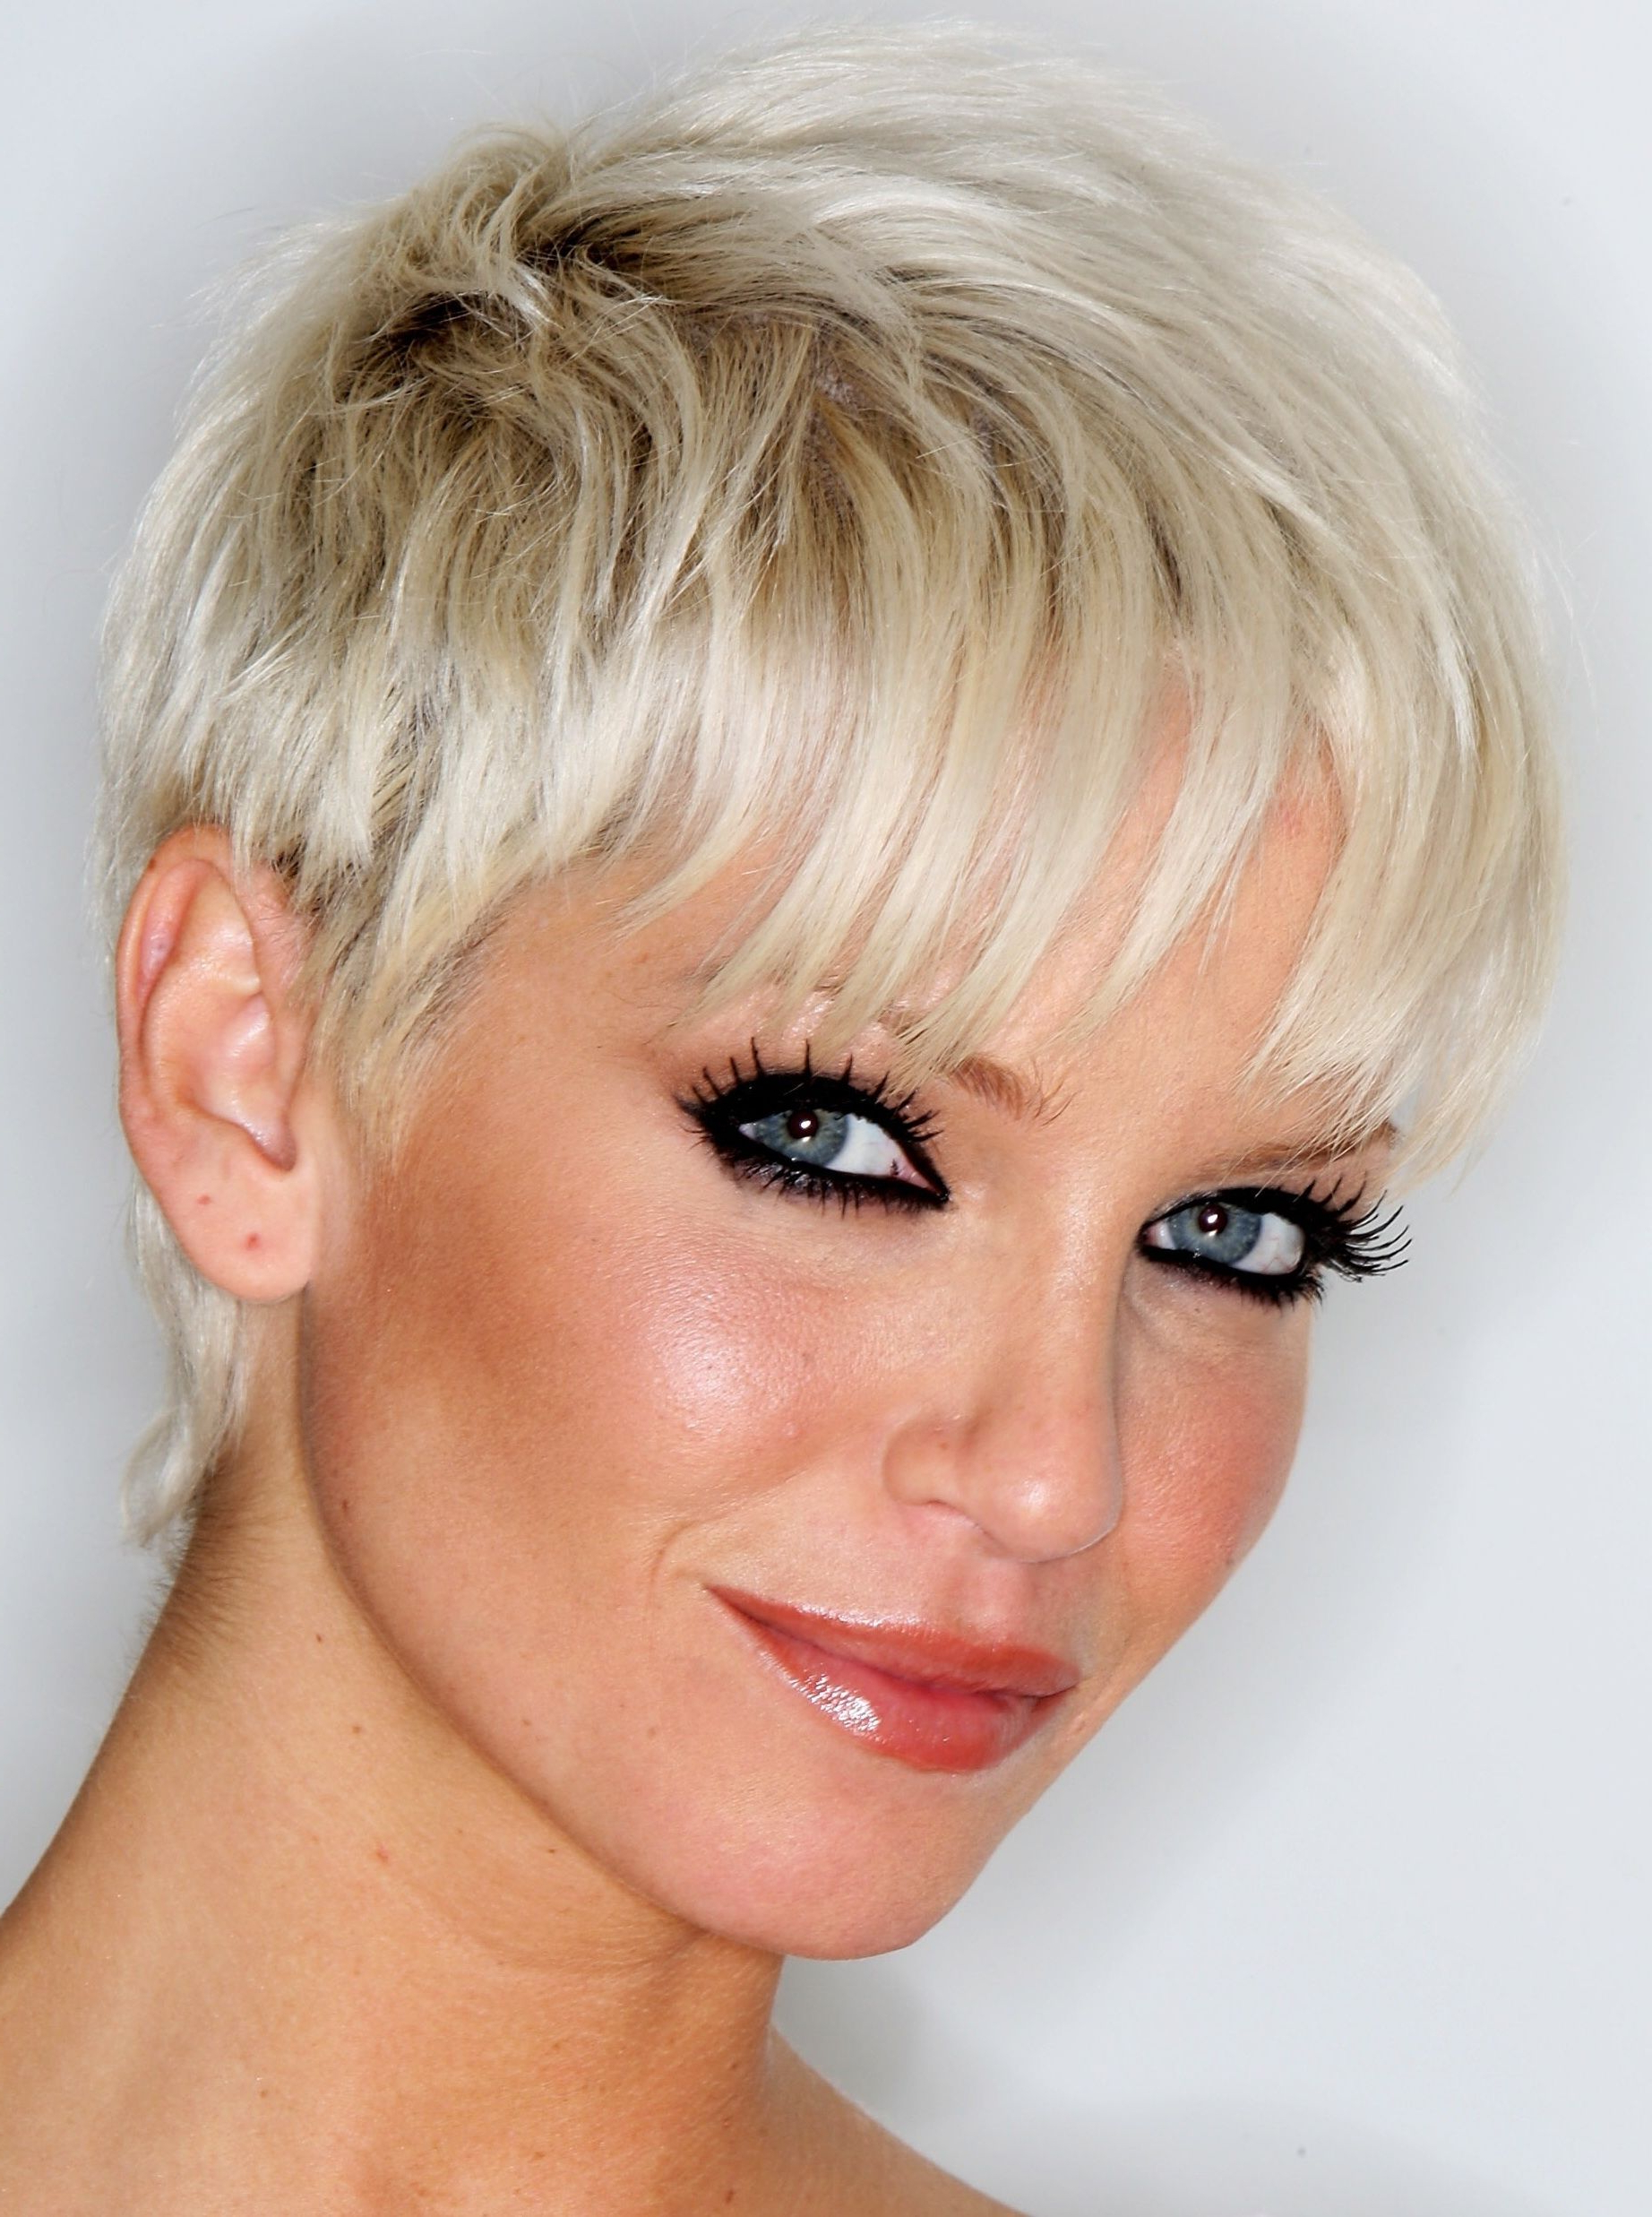 Rock The Best Hairstyle For Your Body Type | Beauty & Fashion Throughout Short Haircuts For Petite Women (View 16 of 25)